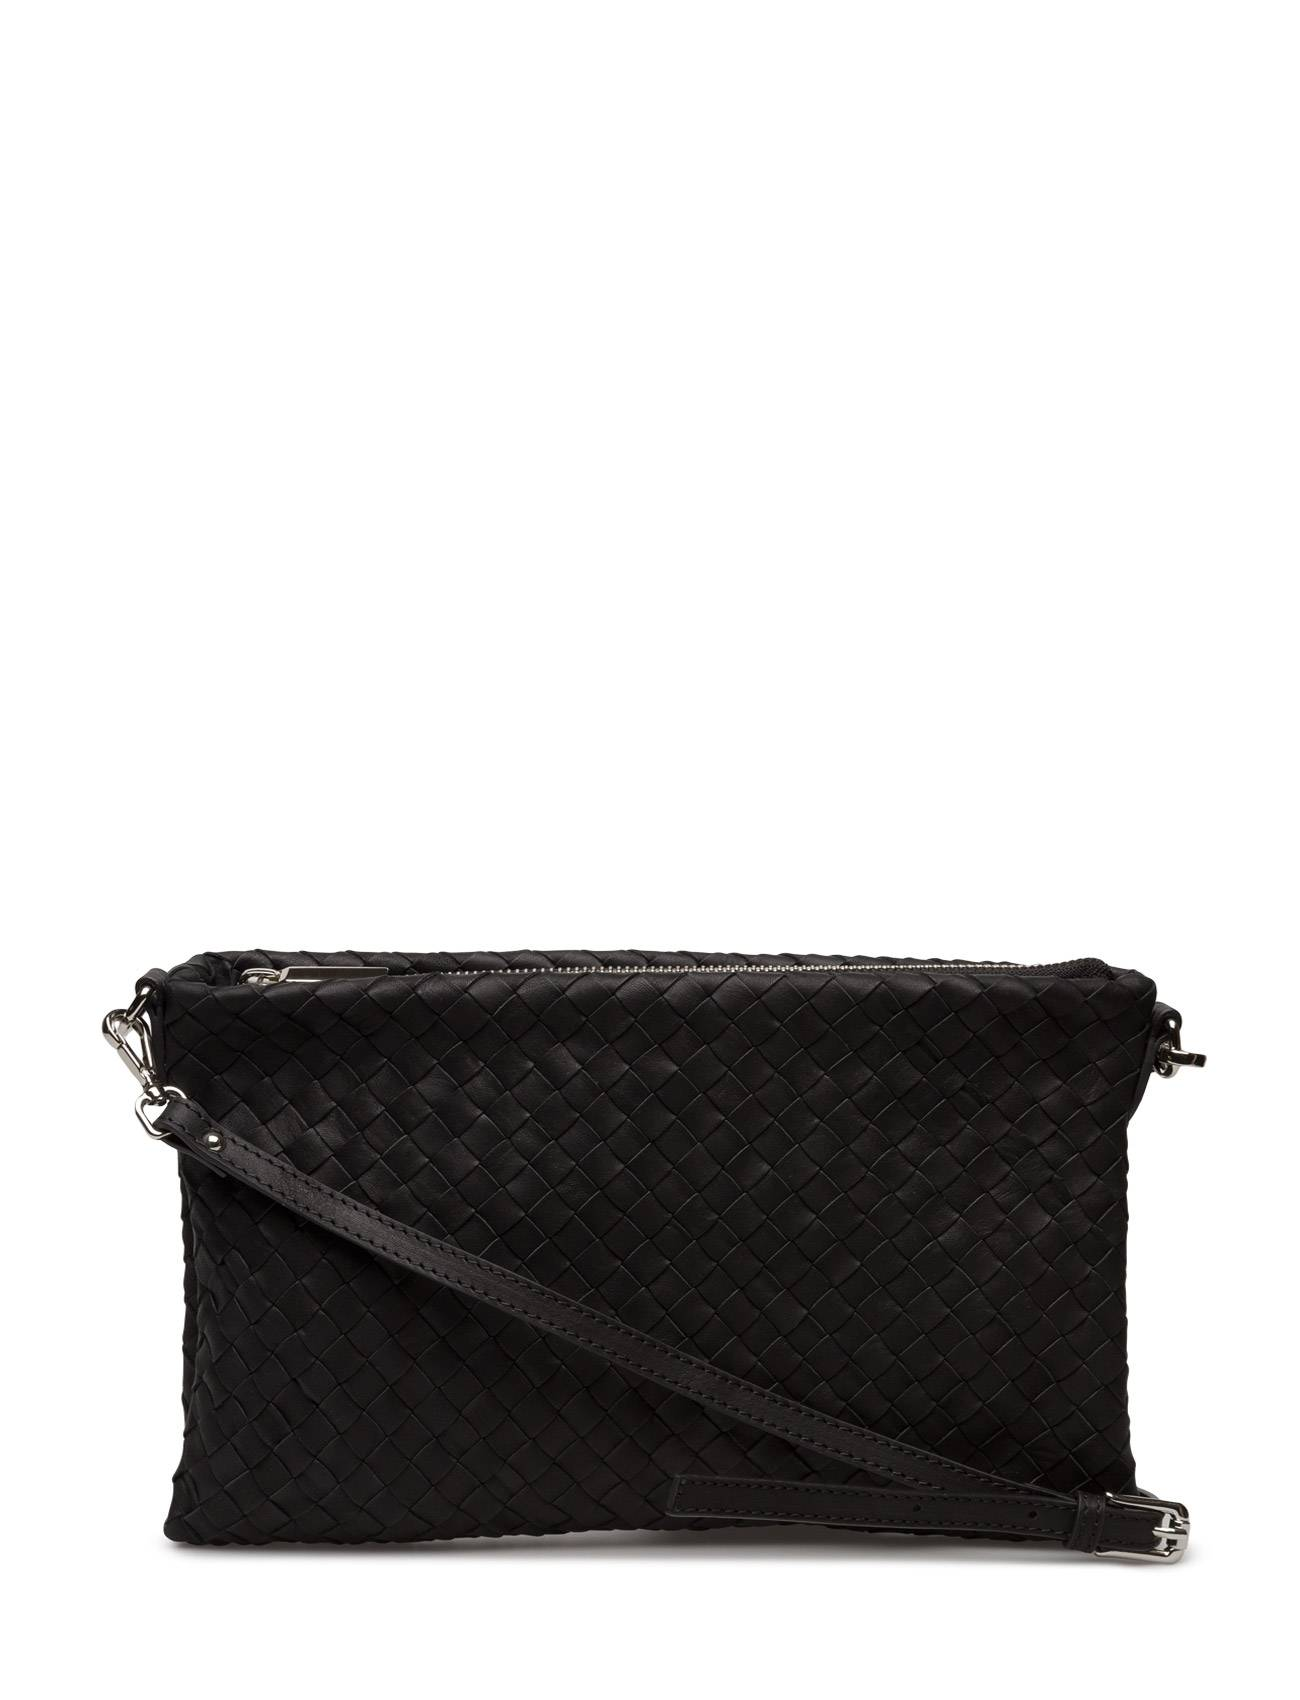 Decadent Woven Small Flat Cross Body